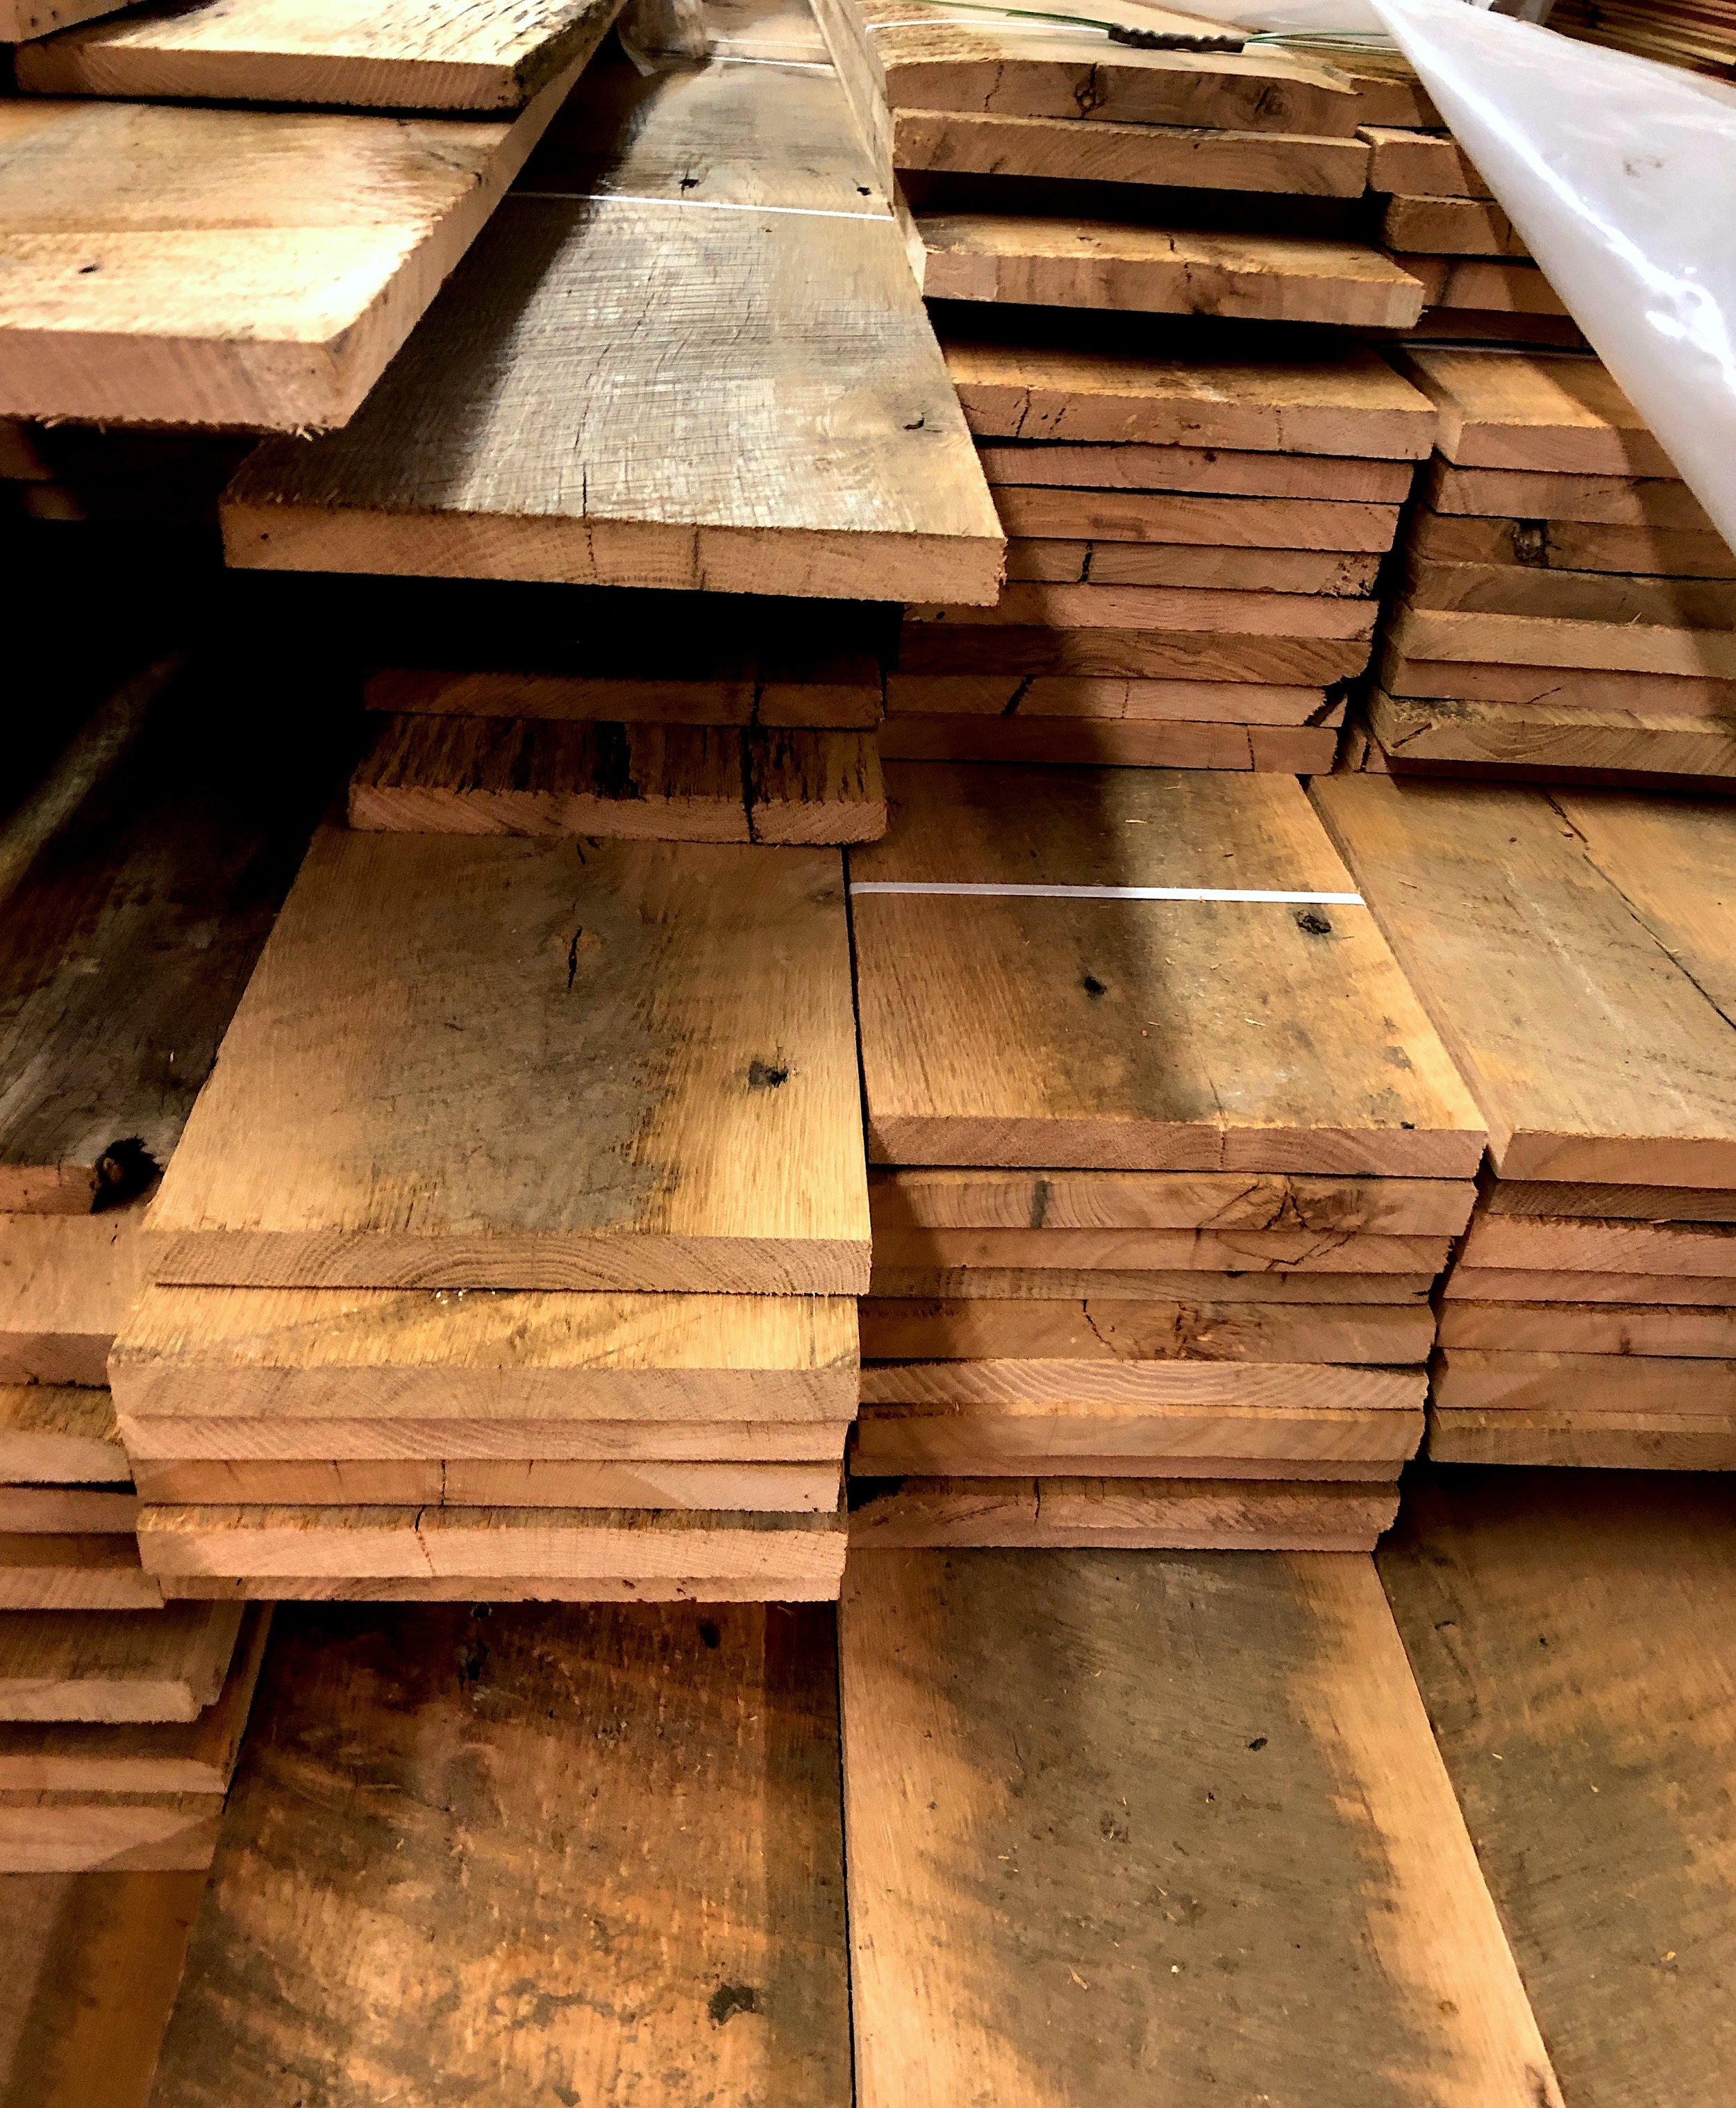 Sawmill Oak has rich and rustic character, including saw-trace marks, nail holes and deep grooves.